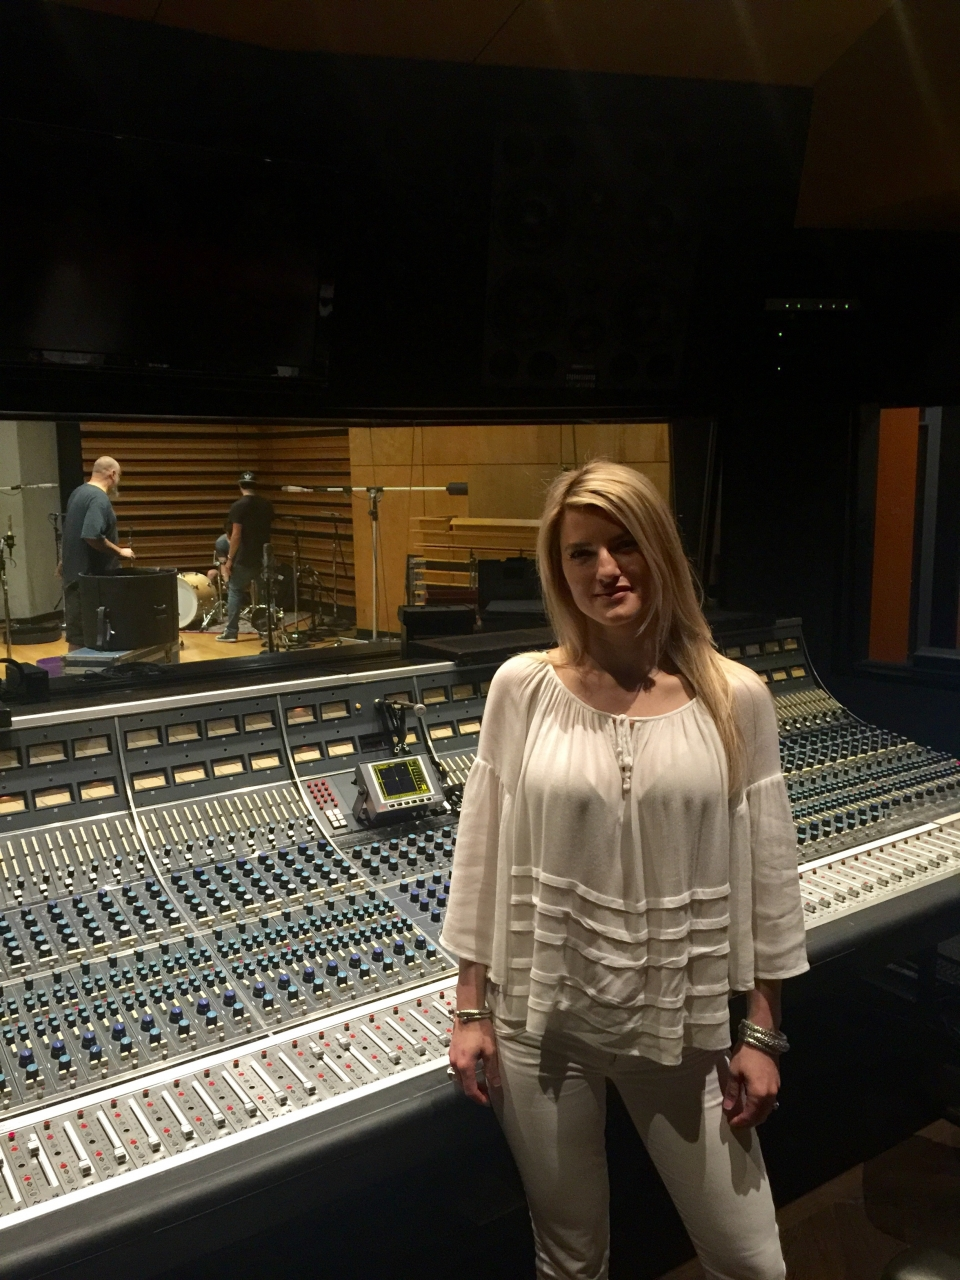 Production NRG NOHO - Tracking drums at famous NRG studio in NOHO. Writer & co producer Jackie Leigh. Producer Matt Squire. Band Drayter.